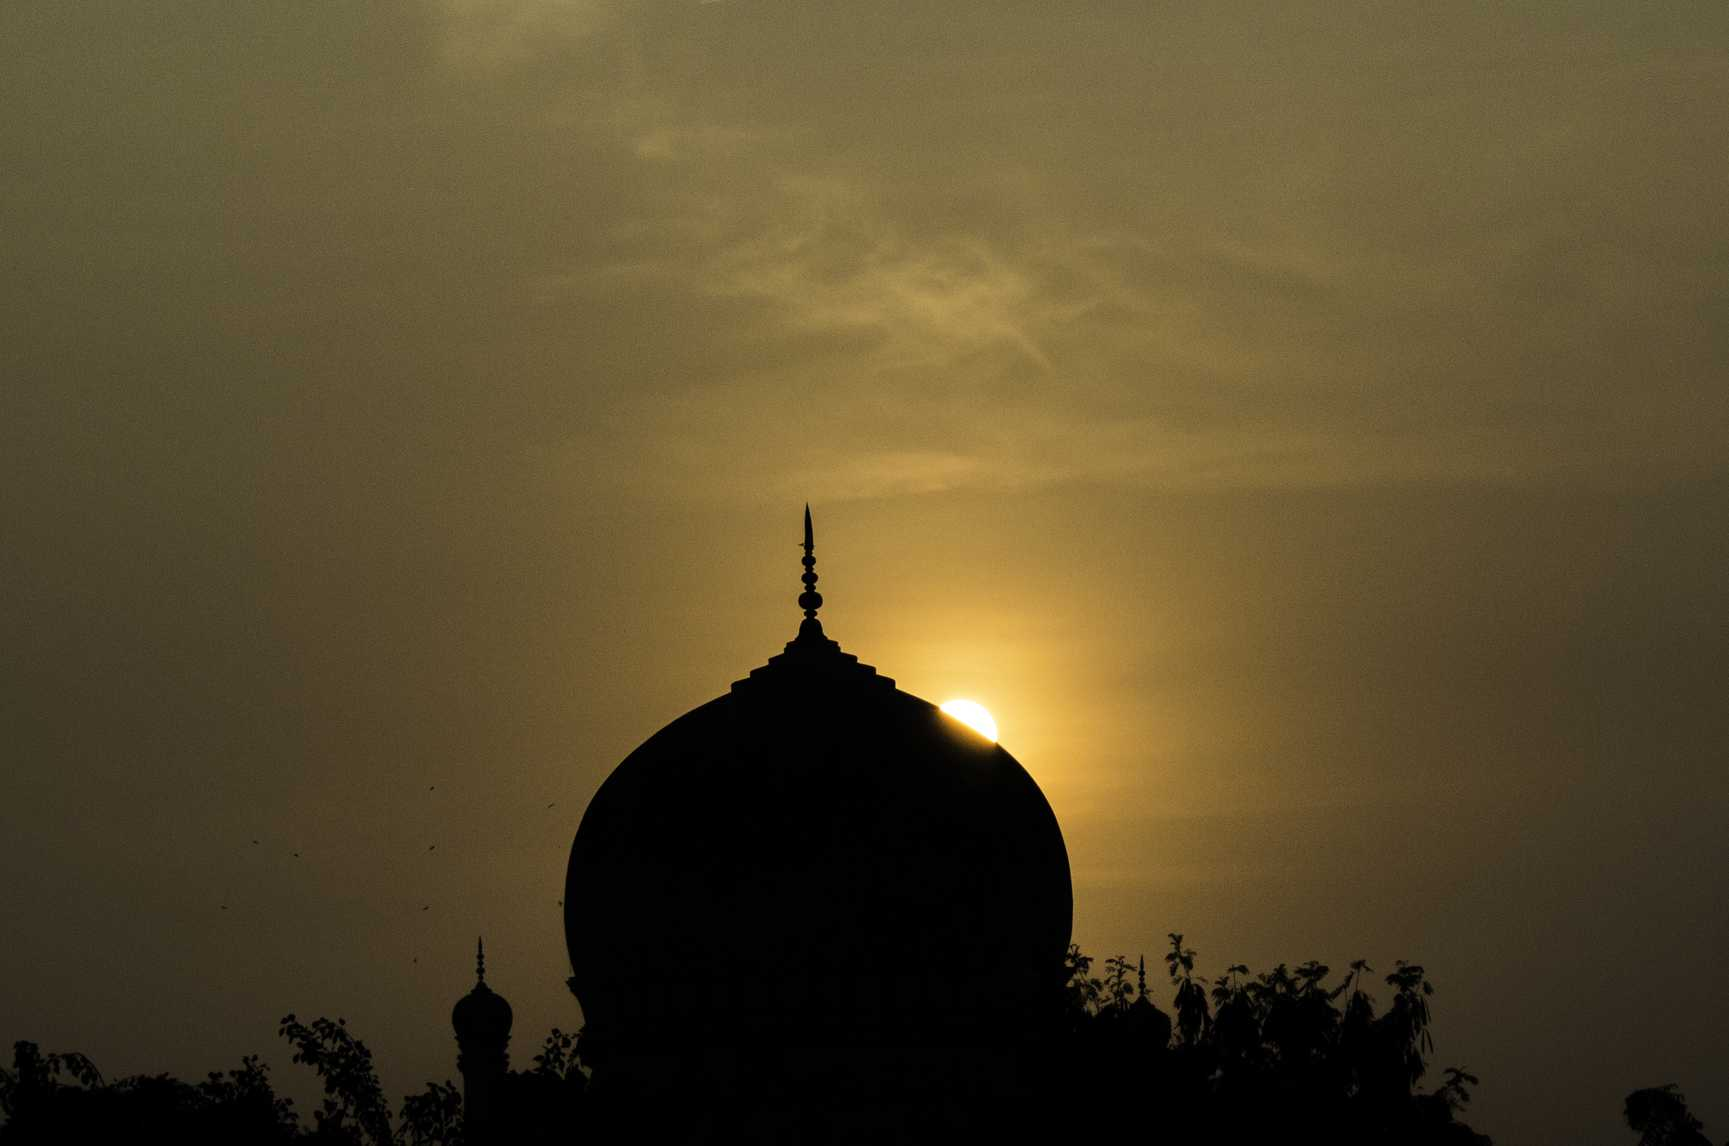 hiding-sun-qutub-shahi-tombs-hyderabad-india